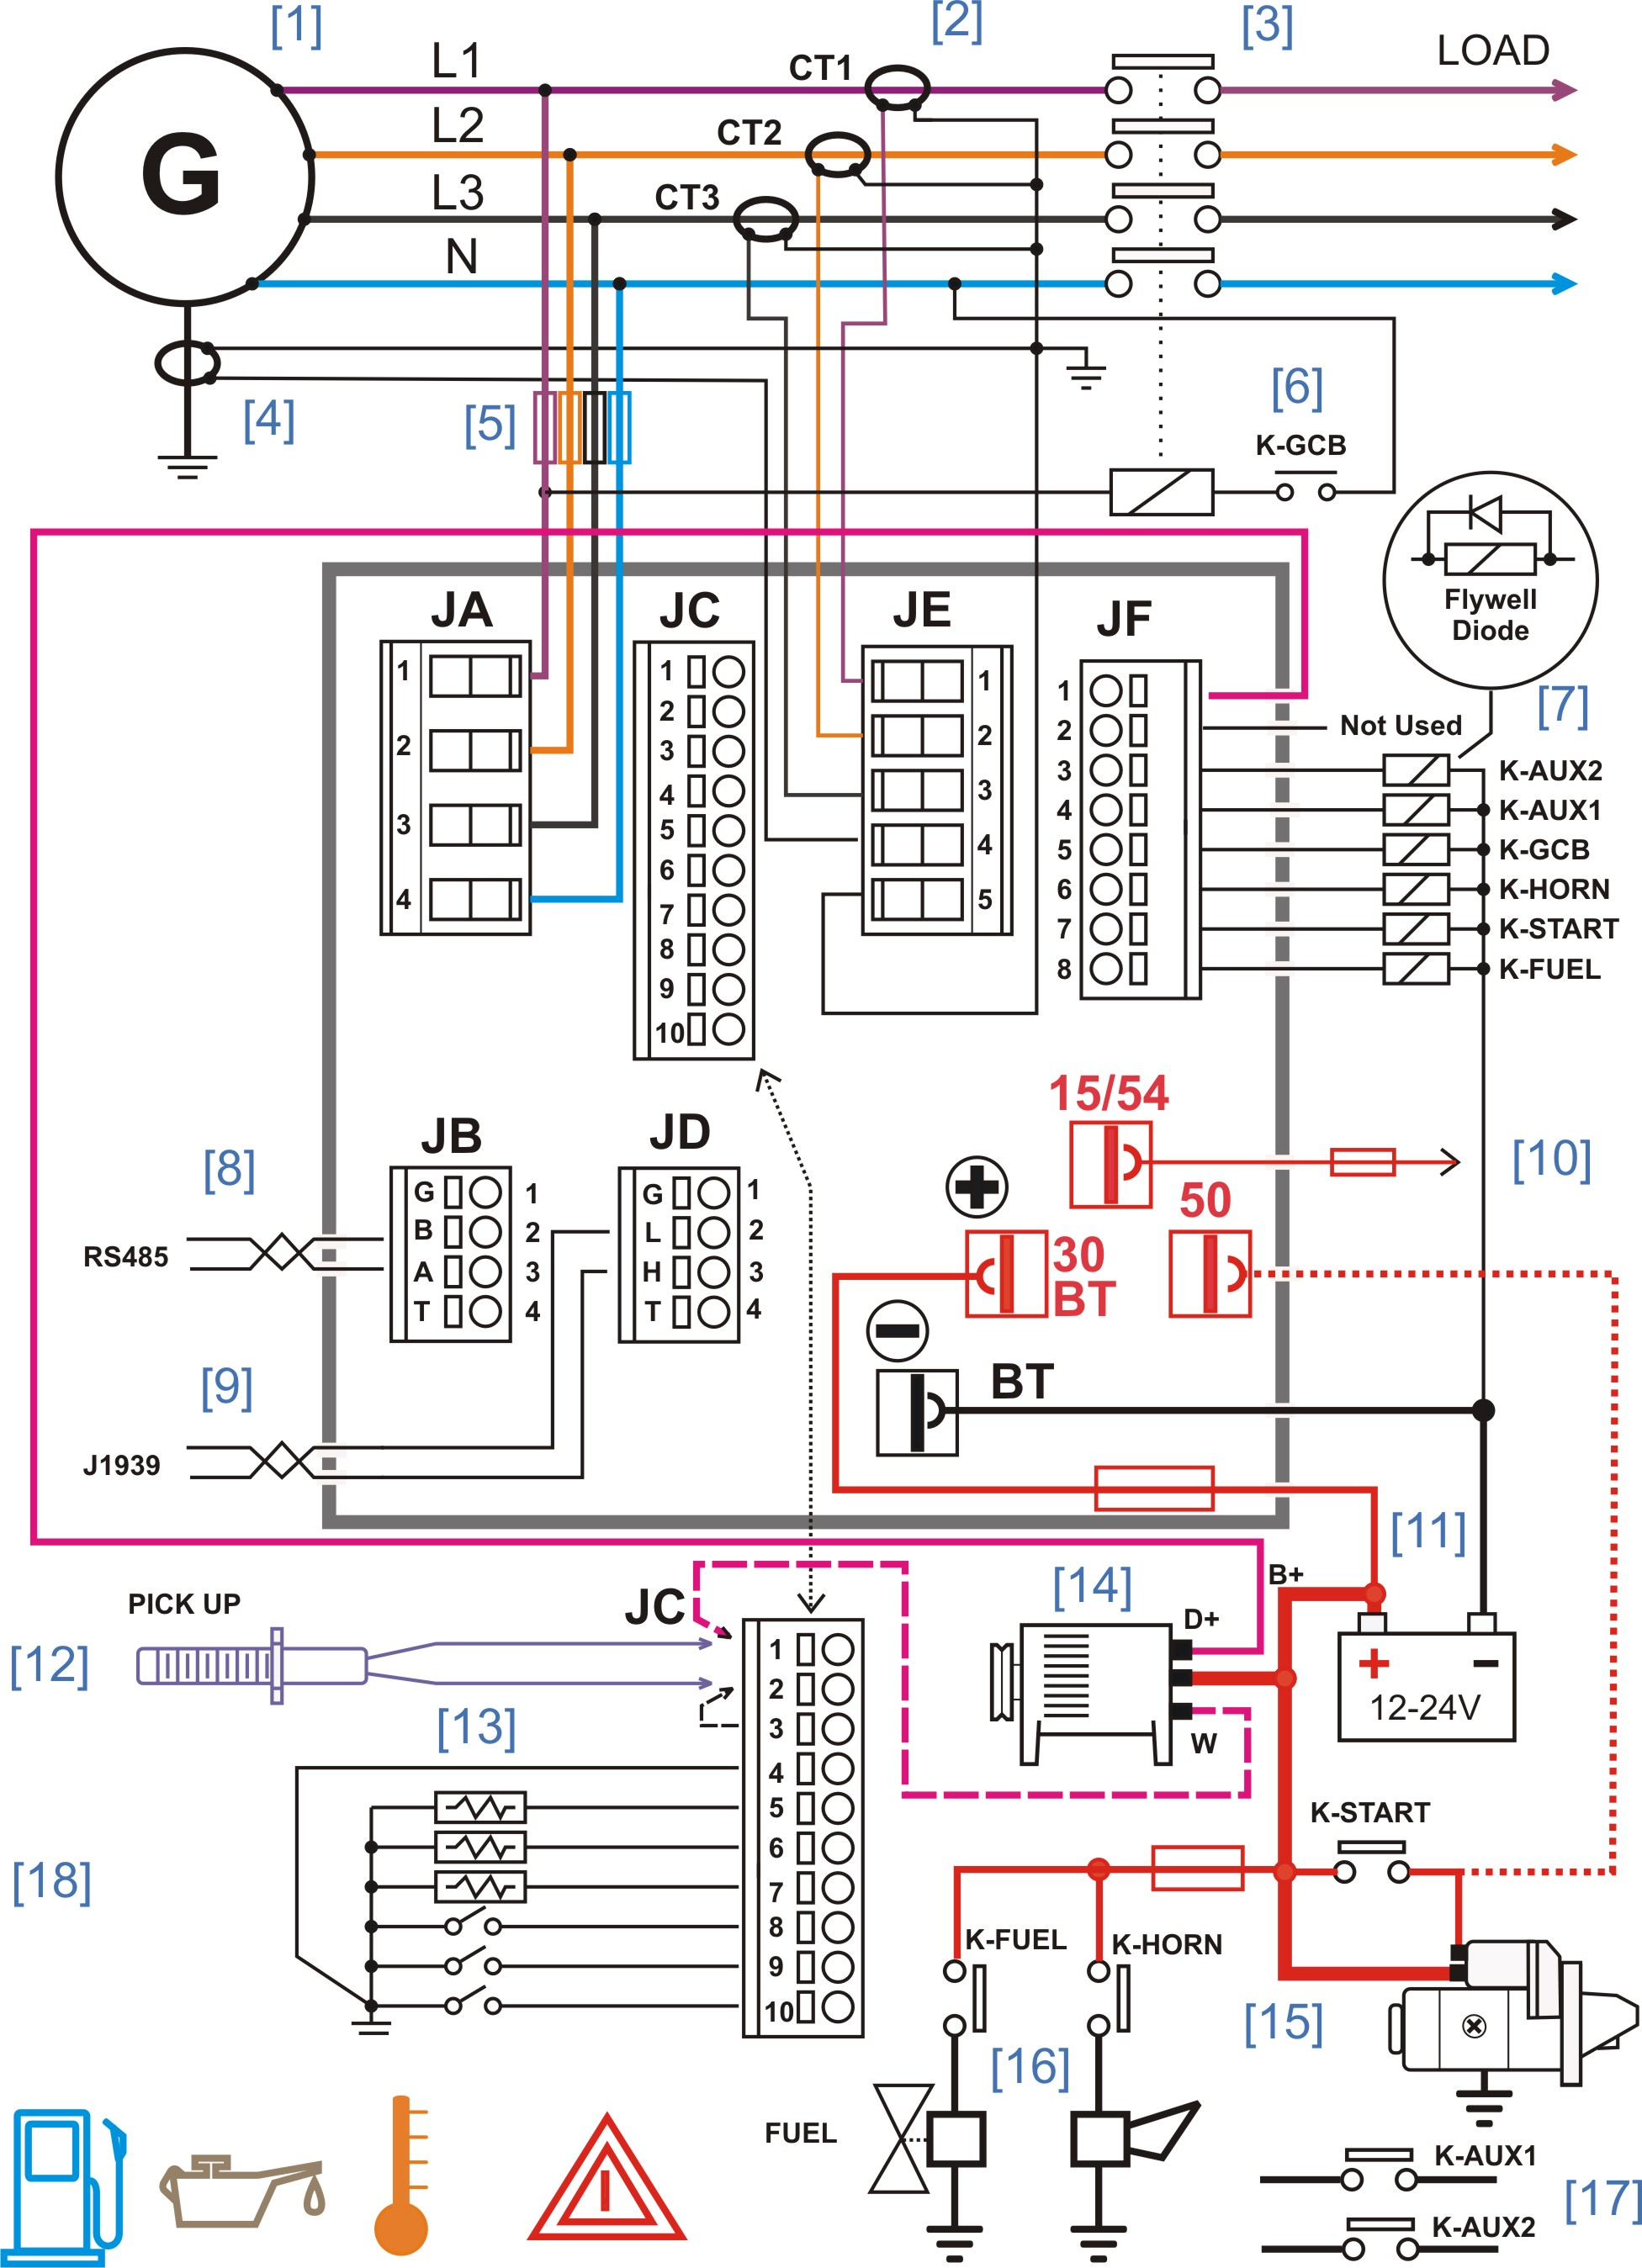 Diesel Generator Control Panel Wiring Diagram diesel generator control panel wiring diagram genset controller  at mifinder.co